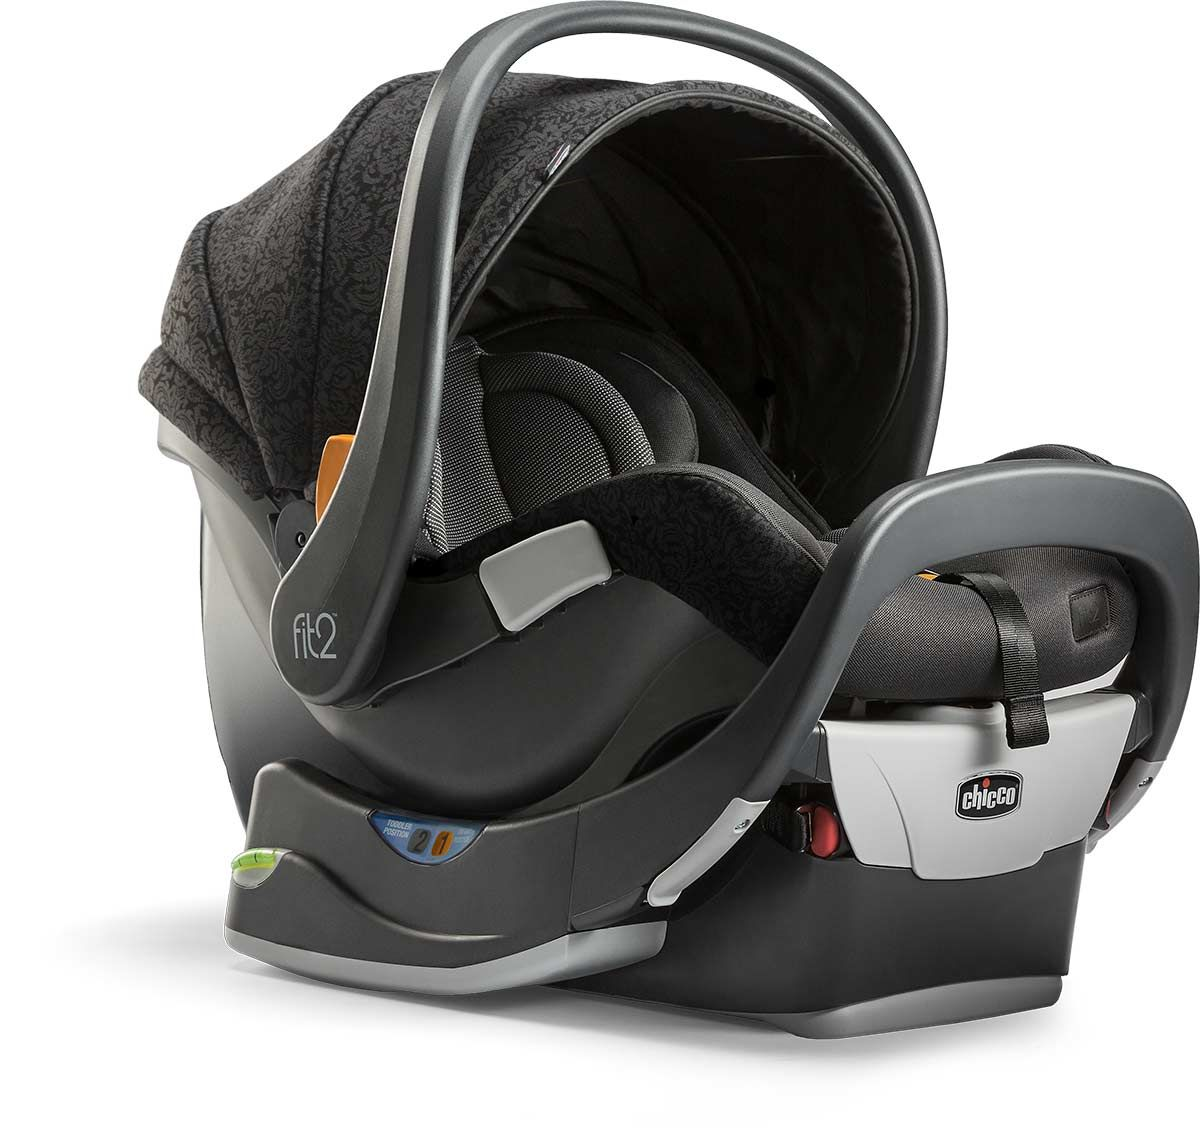 Learn About The Chicco Fit2 Car Seat Safety And Features Shop For This Innovative 2 Year Rear Facing Infant Toddler